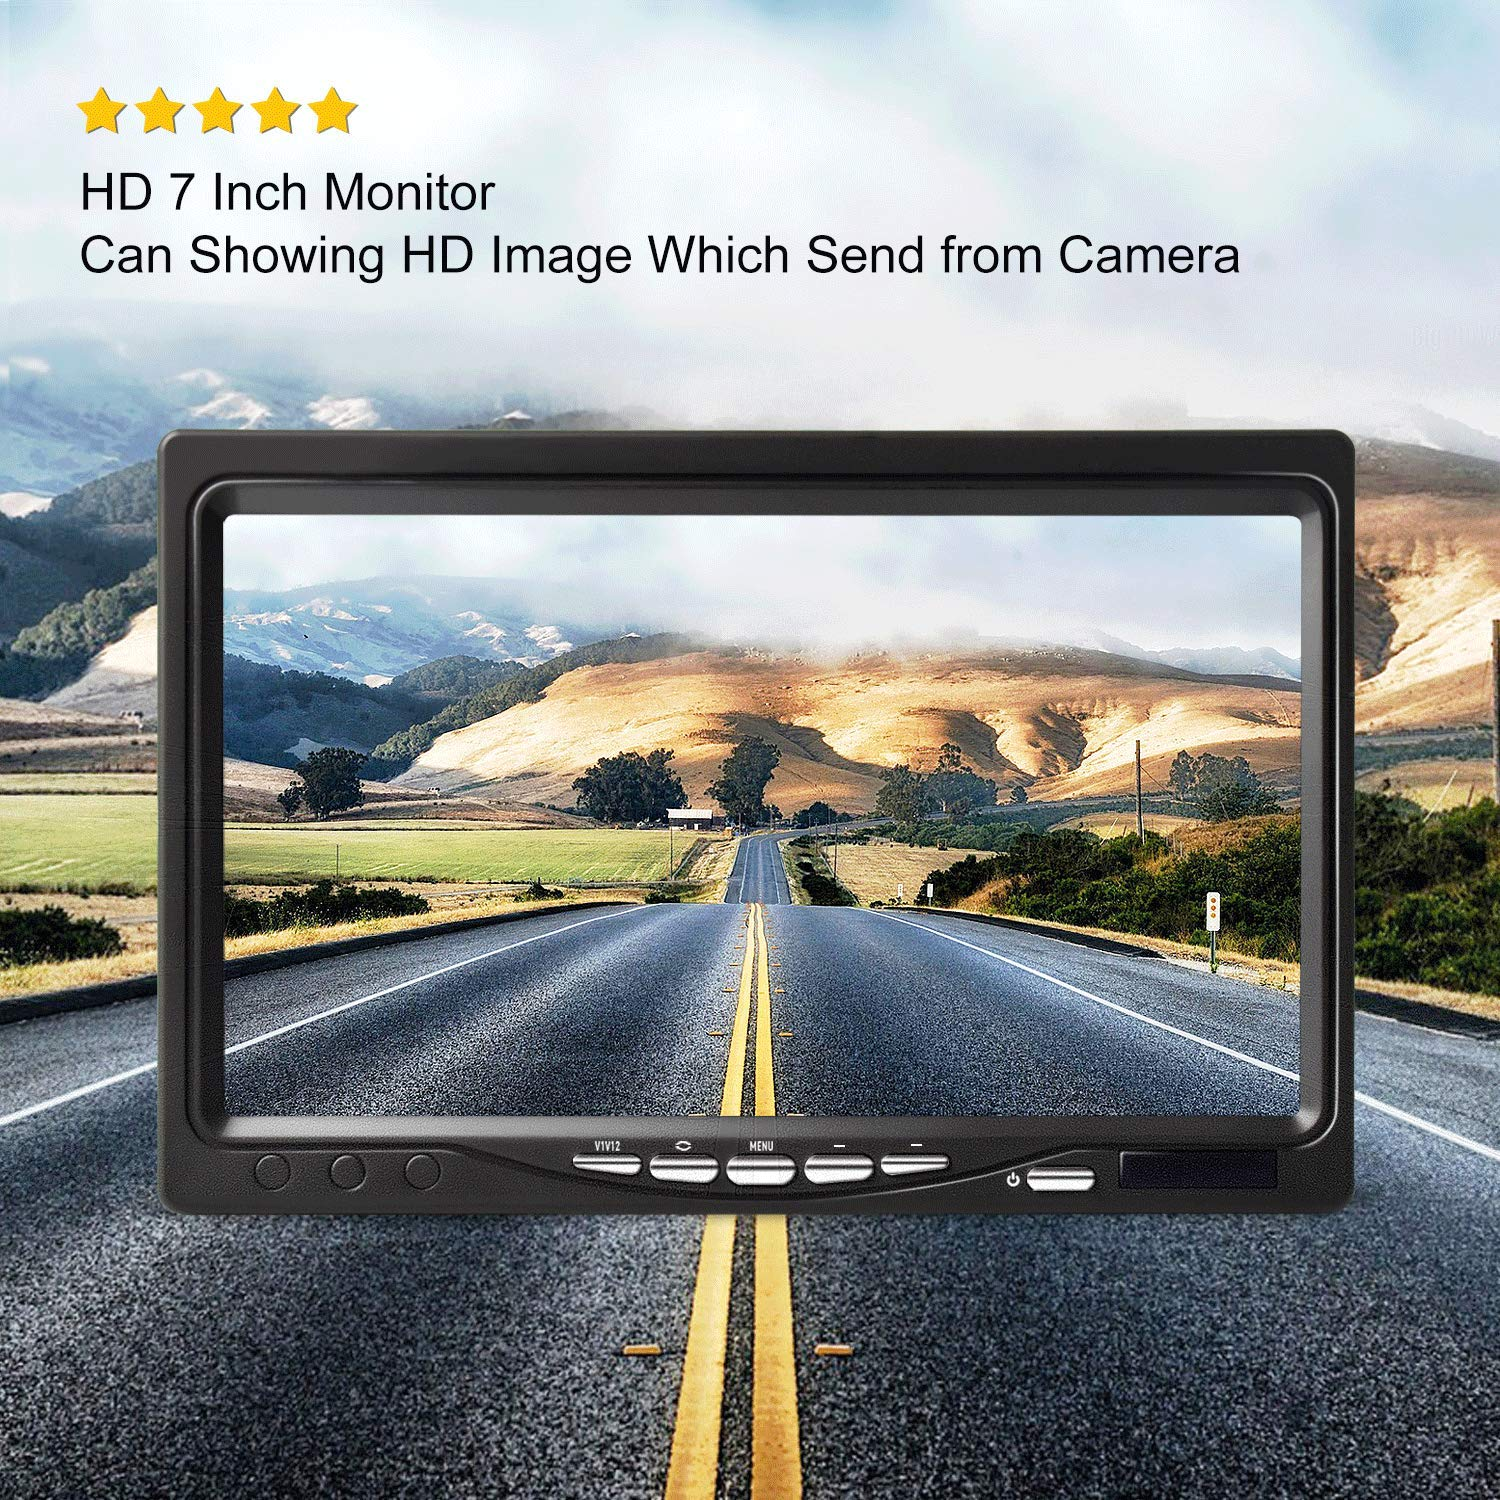 Reversing Camera: The Gadget that Lets You View More Images in Just One Screen